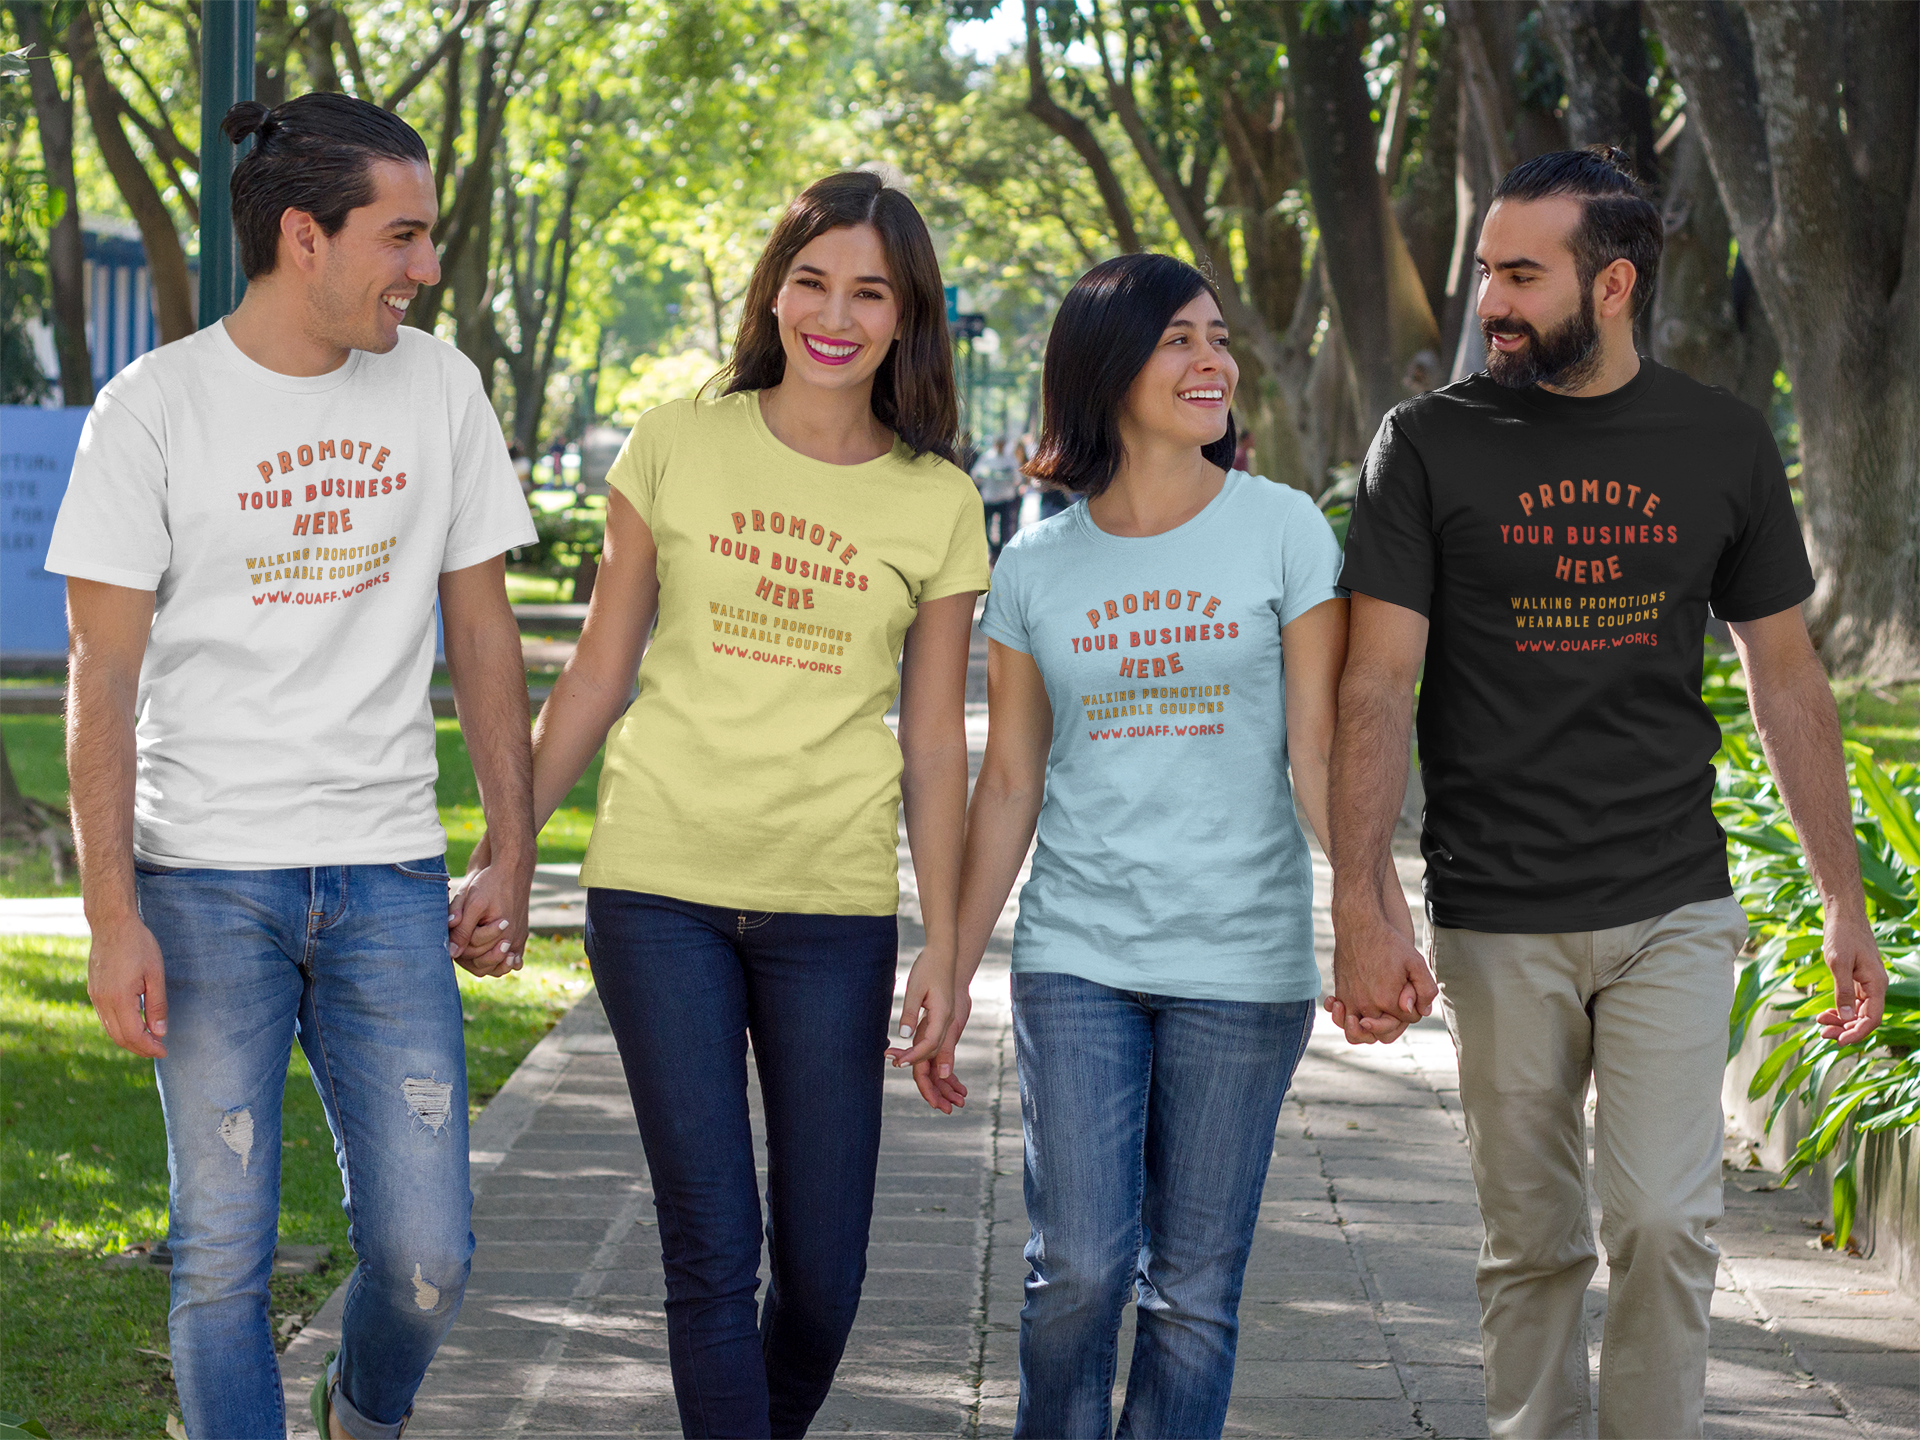 group-of-two-couples-walking-and-talking-at-a-park-while-wearing-different-t-shirts-template-a15685.png